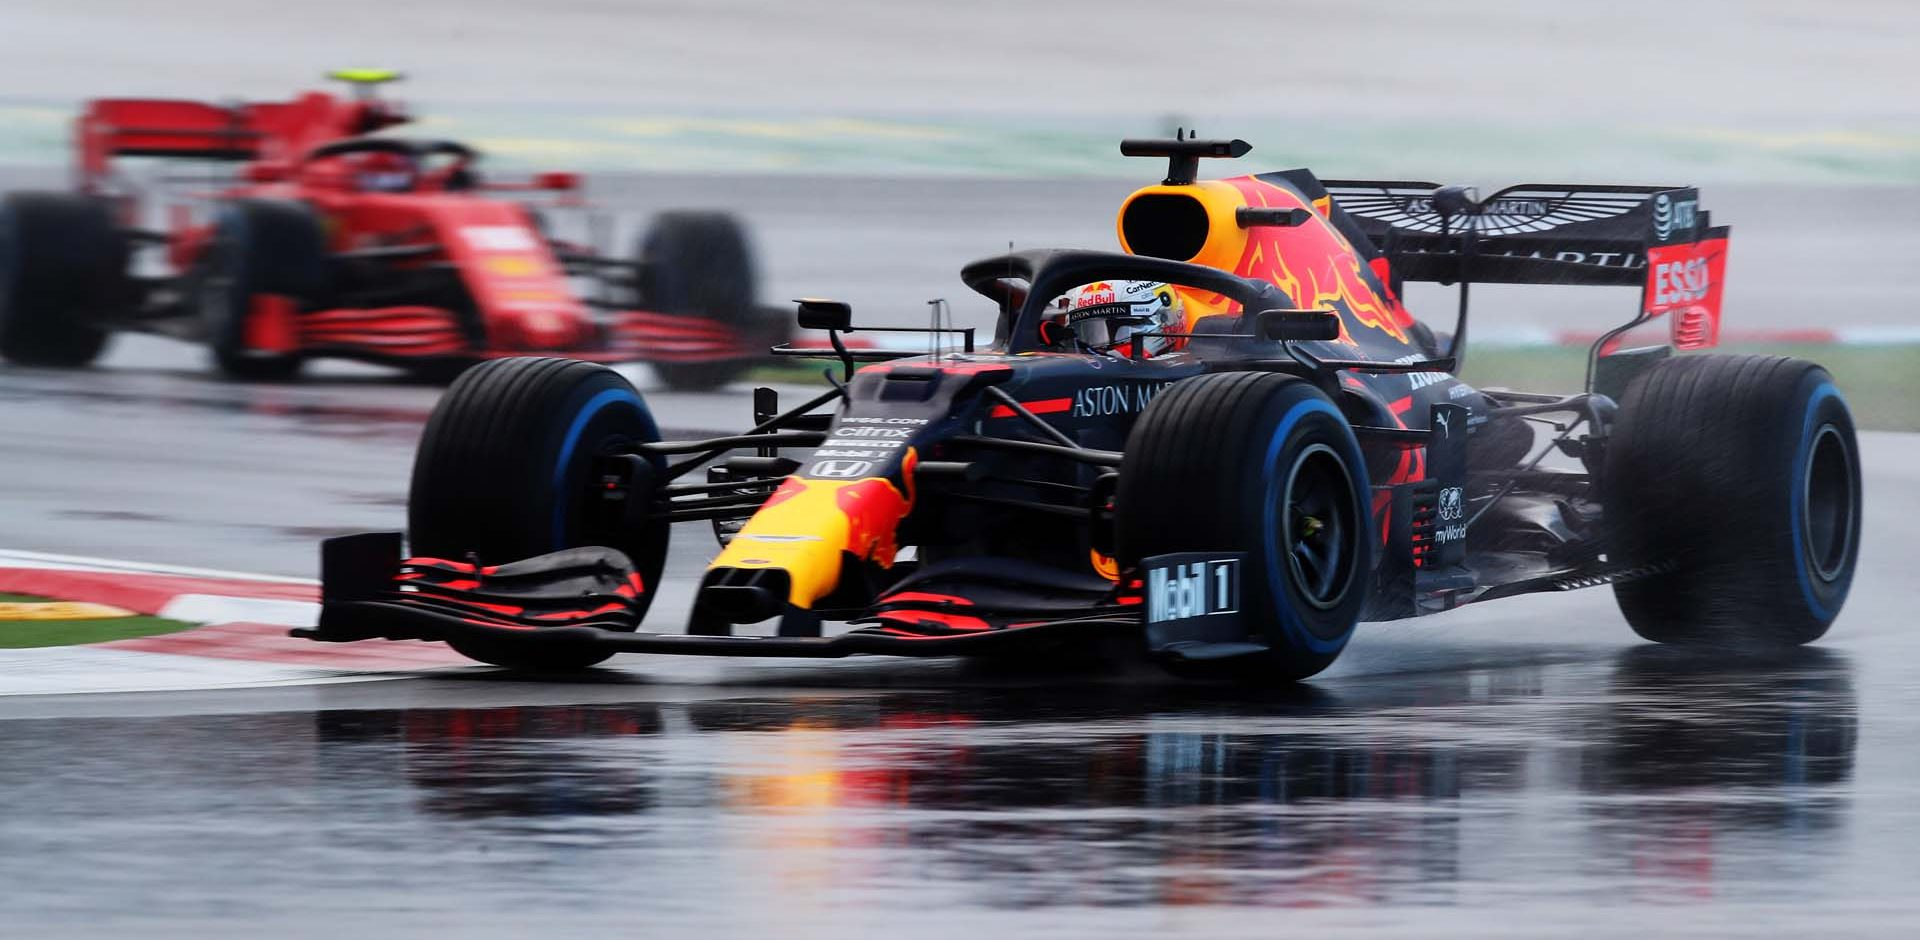 ISTANBUL, TURKEY - NOVEMBER 14: Max Verstappen of the Netherlands driving the (33) Aston Martin Red Bull Racing RB16 on track during qualifying ahead of the F1 Grand Prix of Turkey at Intercity Istanbul Park on November 14, 2020 in Istanbul, Turkey. (Photo by Tolga Bozoglu - Pool/Getty Images)